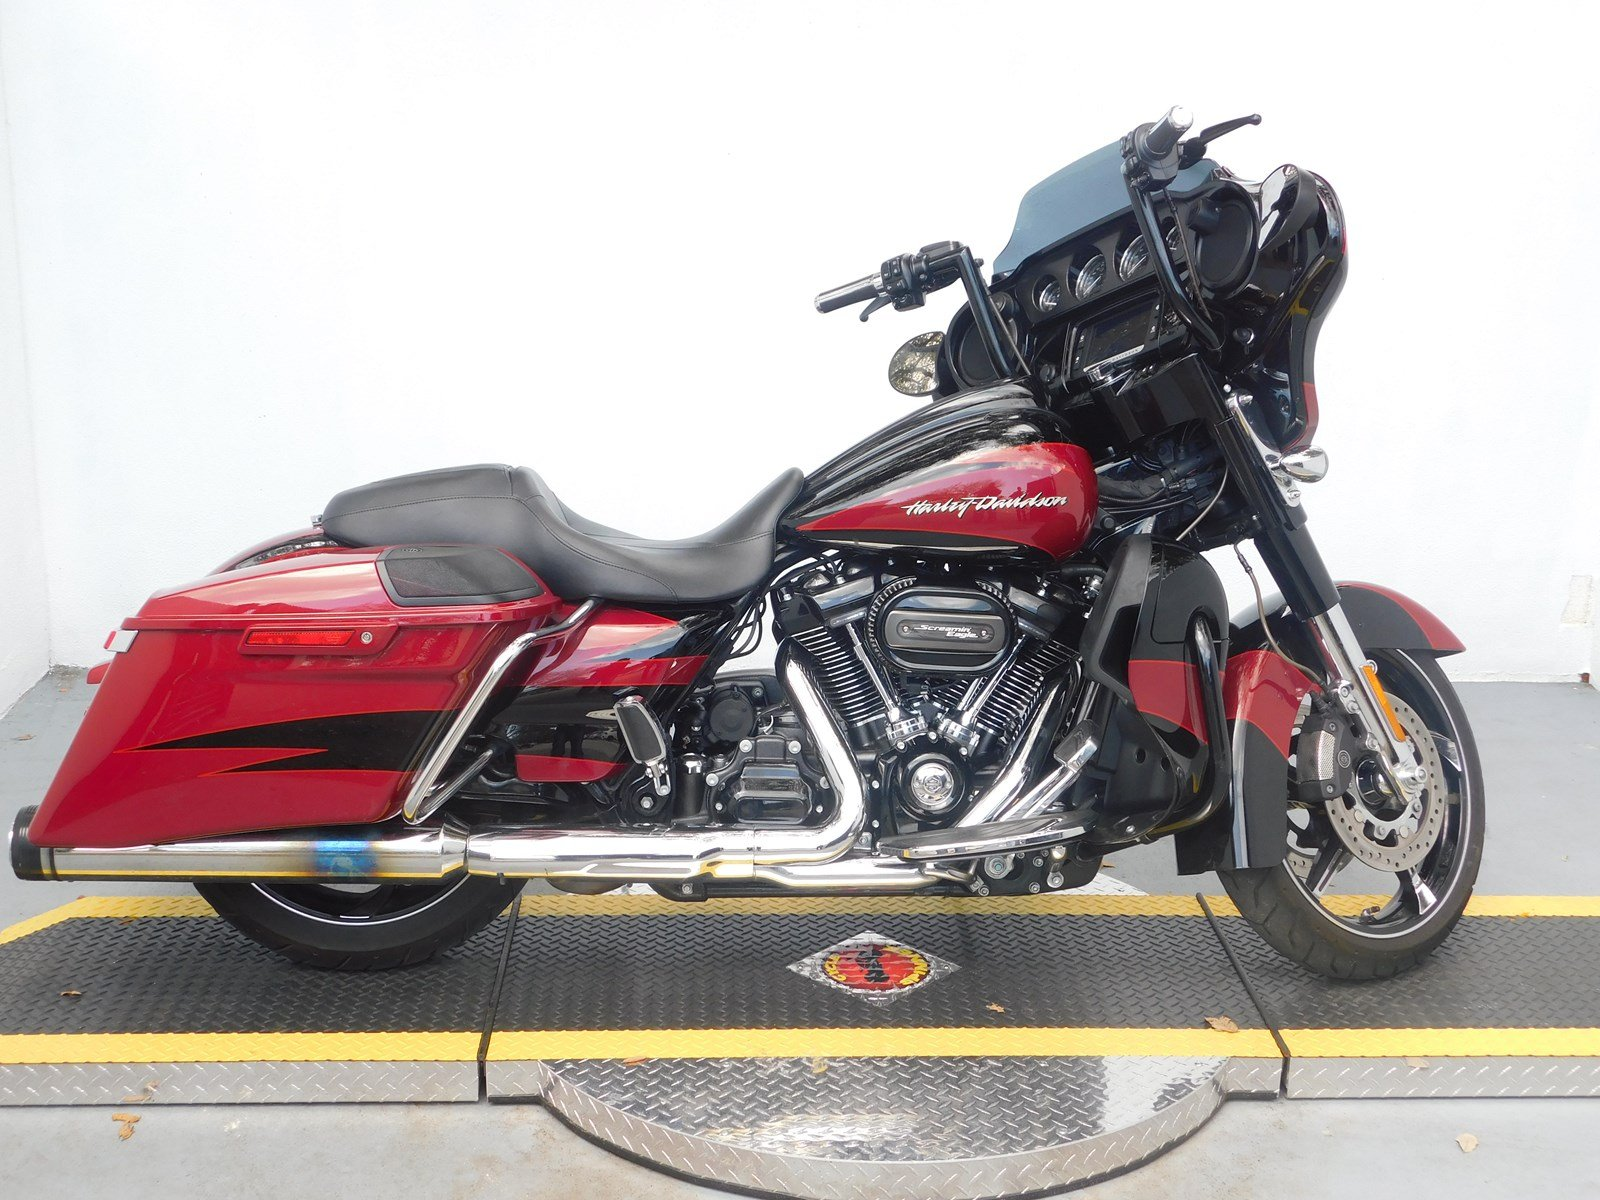 3faa3a6c45c7 Pre-Owned 2017 Harley-Davidson Street Glide CVO FLHXSE CVO Touring in West  Palm Beach  U960302-1